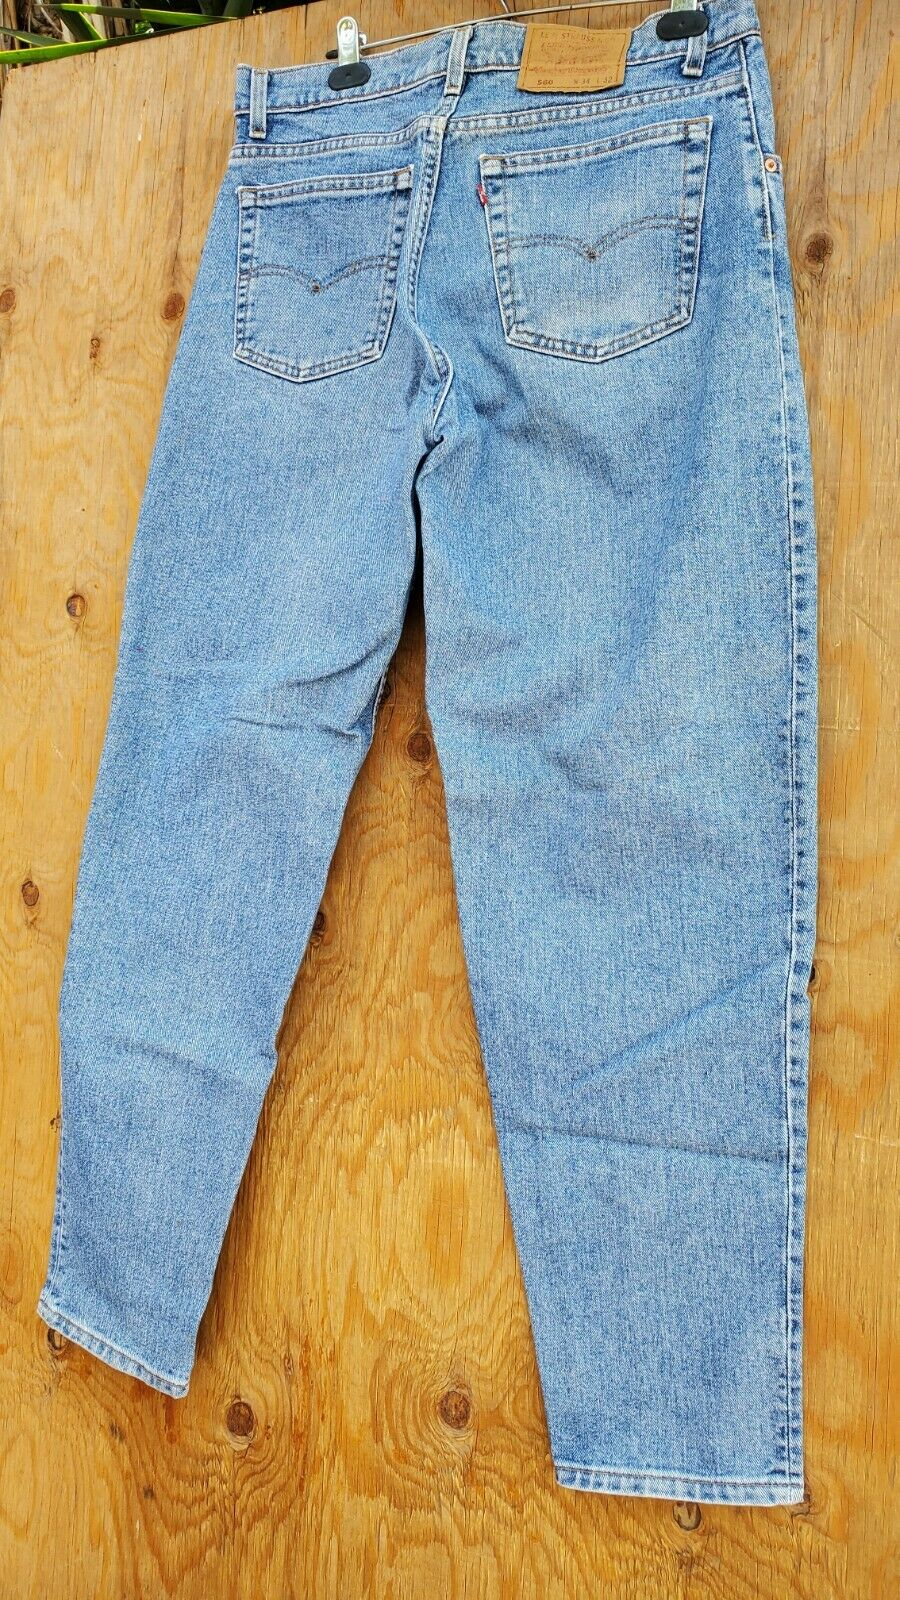 levis 560 34x32.made In Usa - image 4